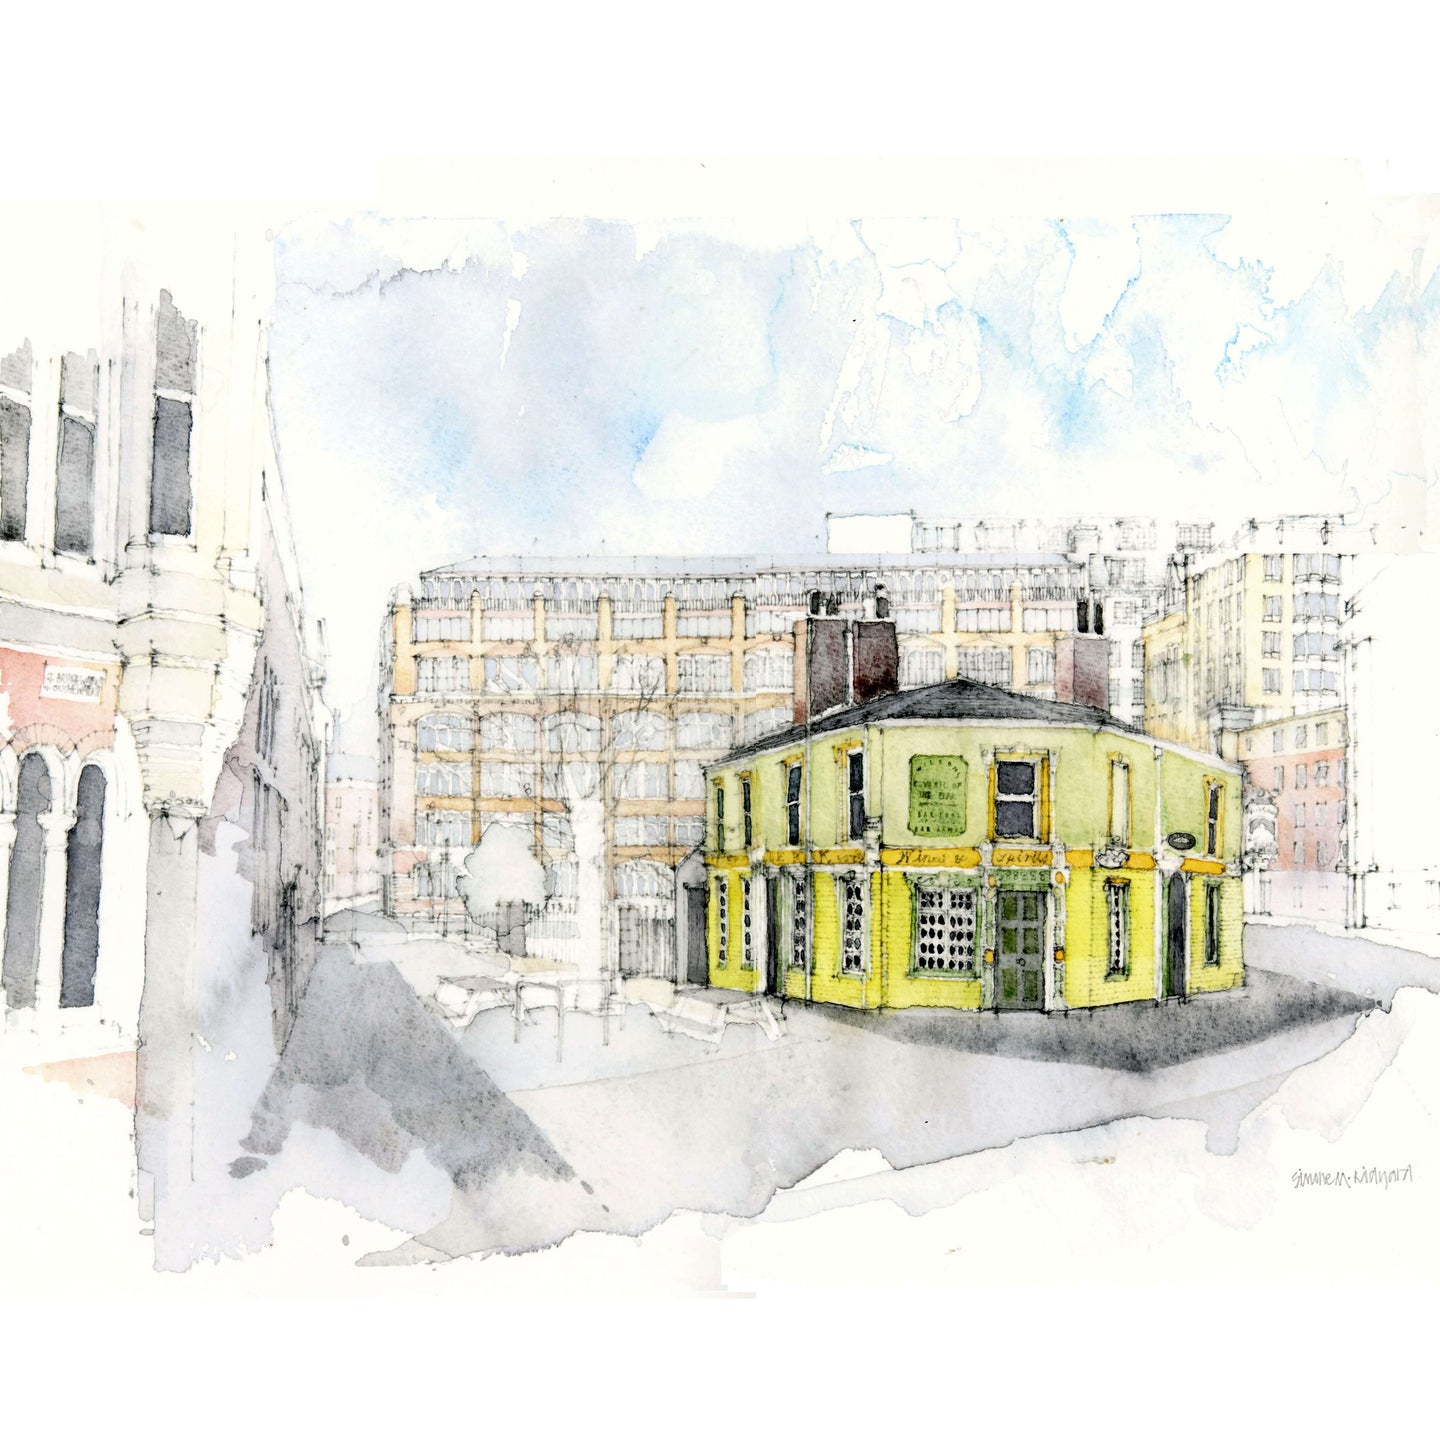 Peveril of the Peak, Manchester Limited-edition print (1/10)